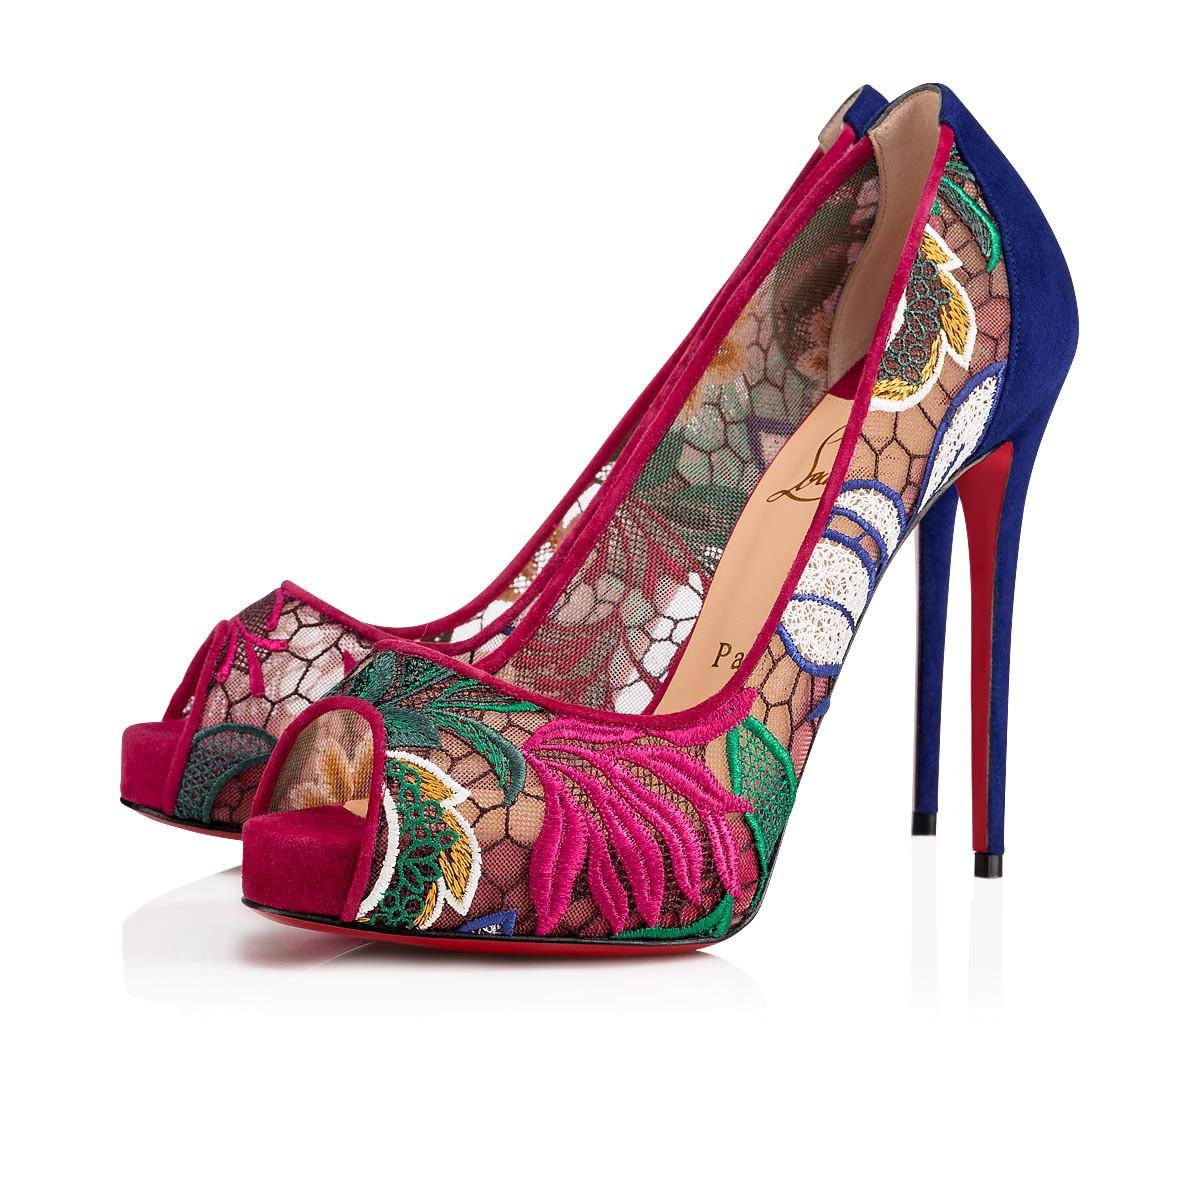 e67e6aa2457 Christian Louboutin Very Lace 120 Floral Platform Pump In Version Multi